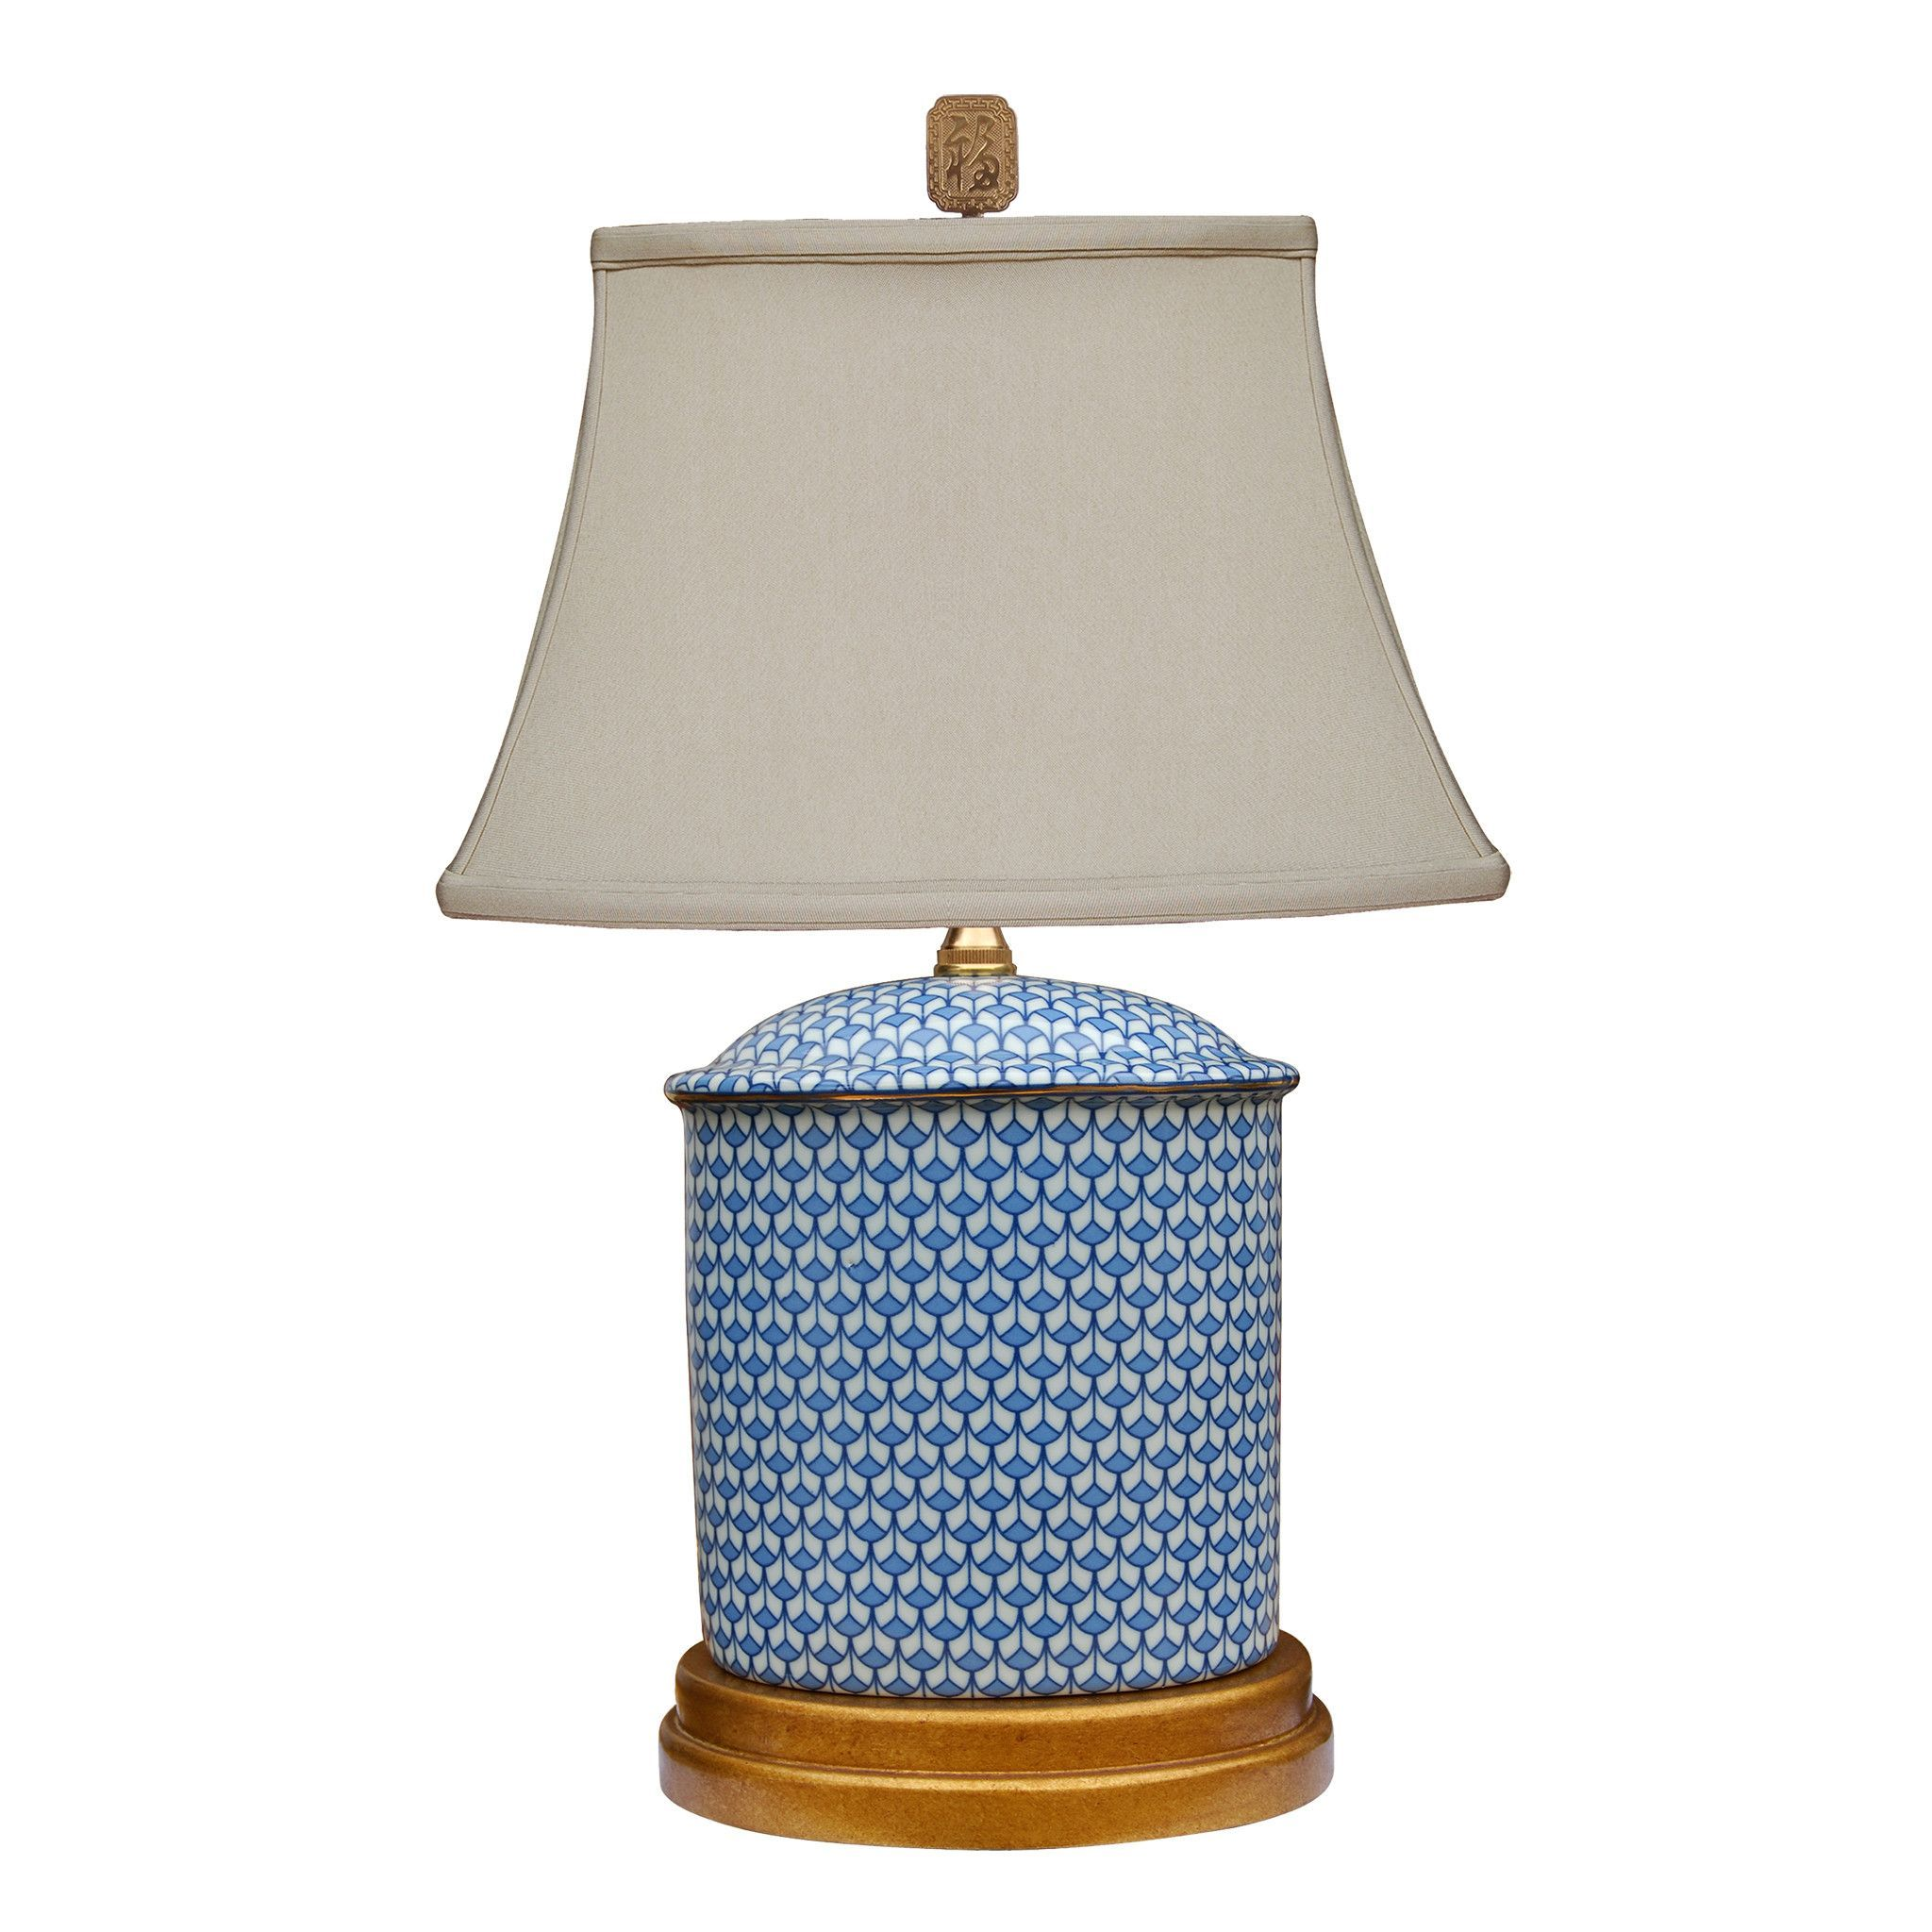 English Blue And White Porcelain Lamp In 2019 Lighting Indoors